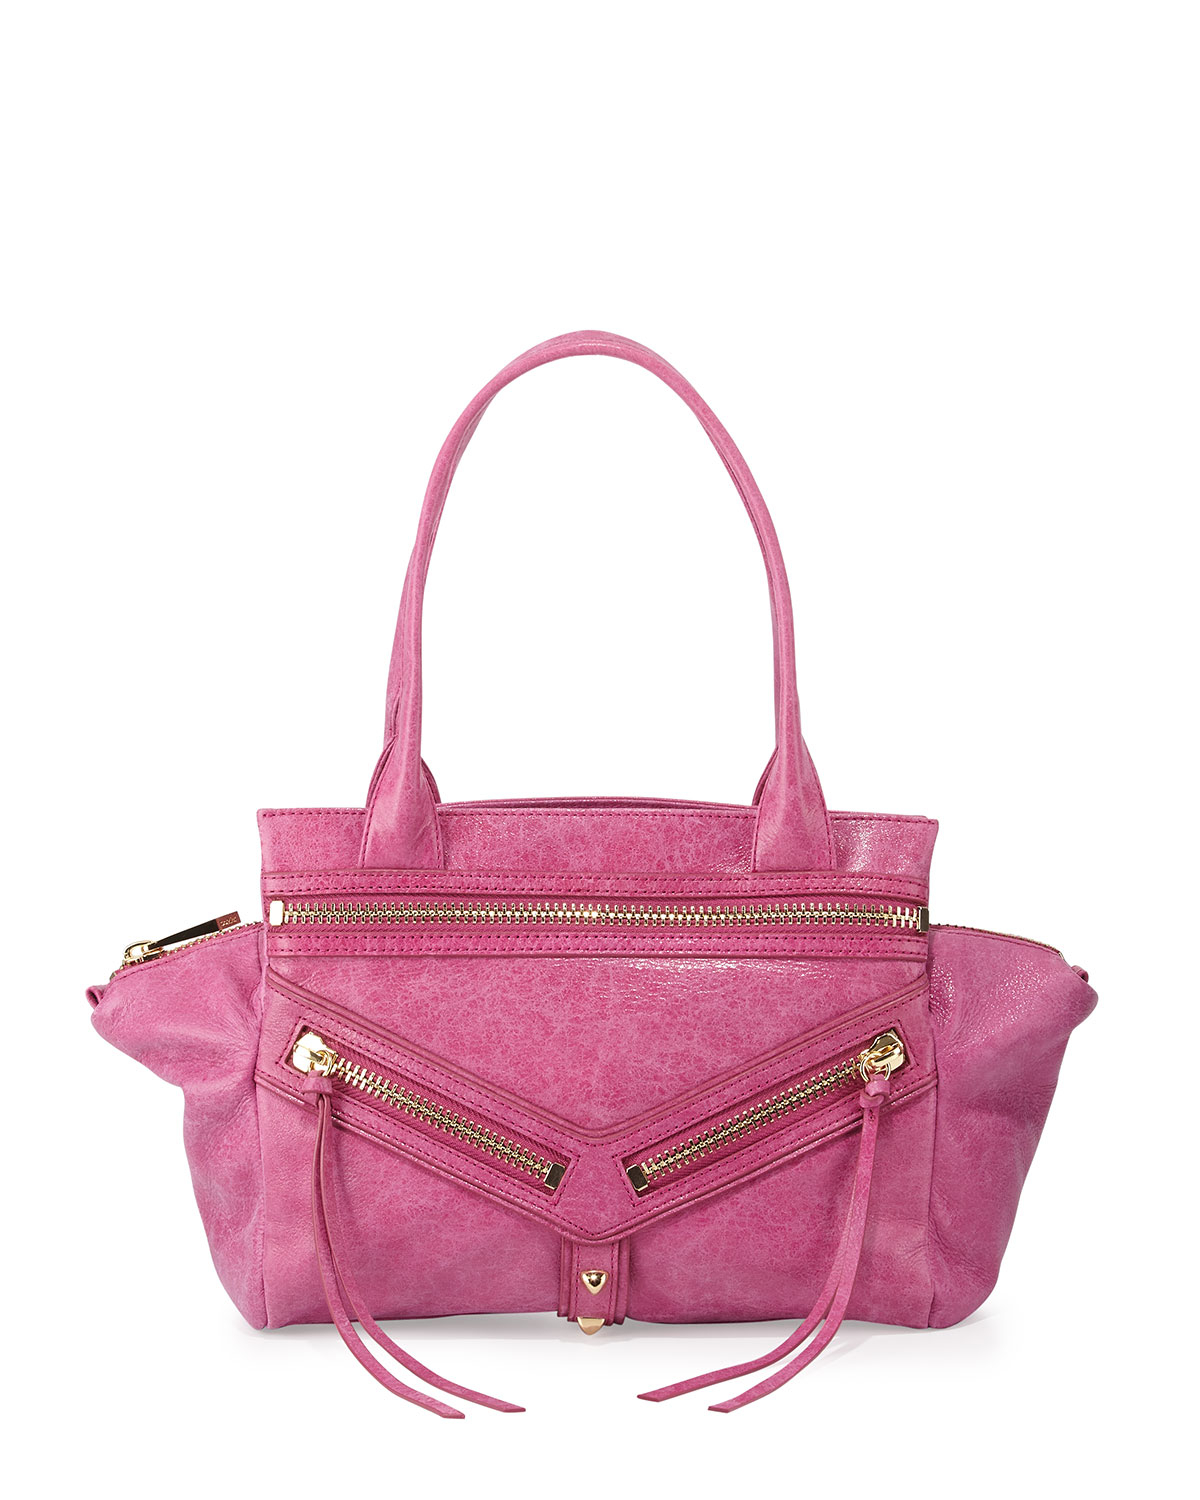 61a2e2c33 Botkier Legacy Studded Small Envelope Satchel Bag in Pink - Lyst